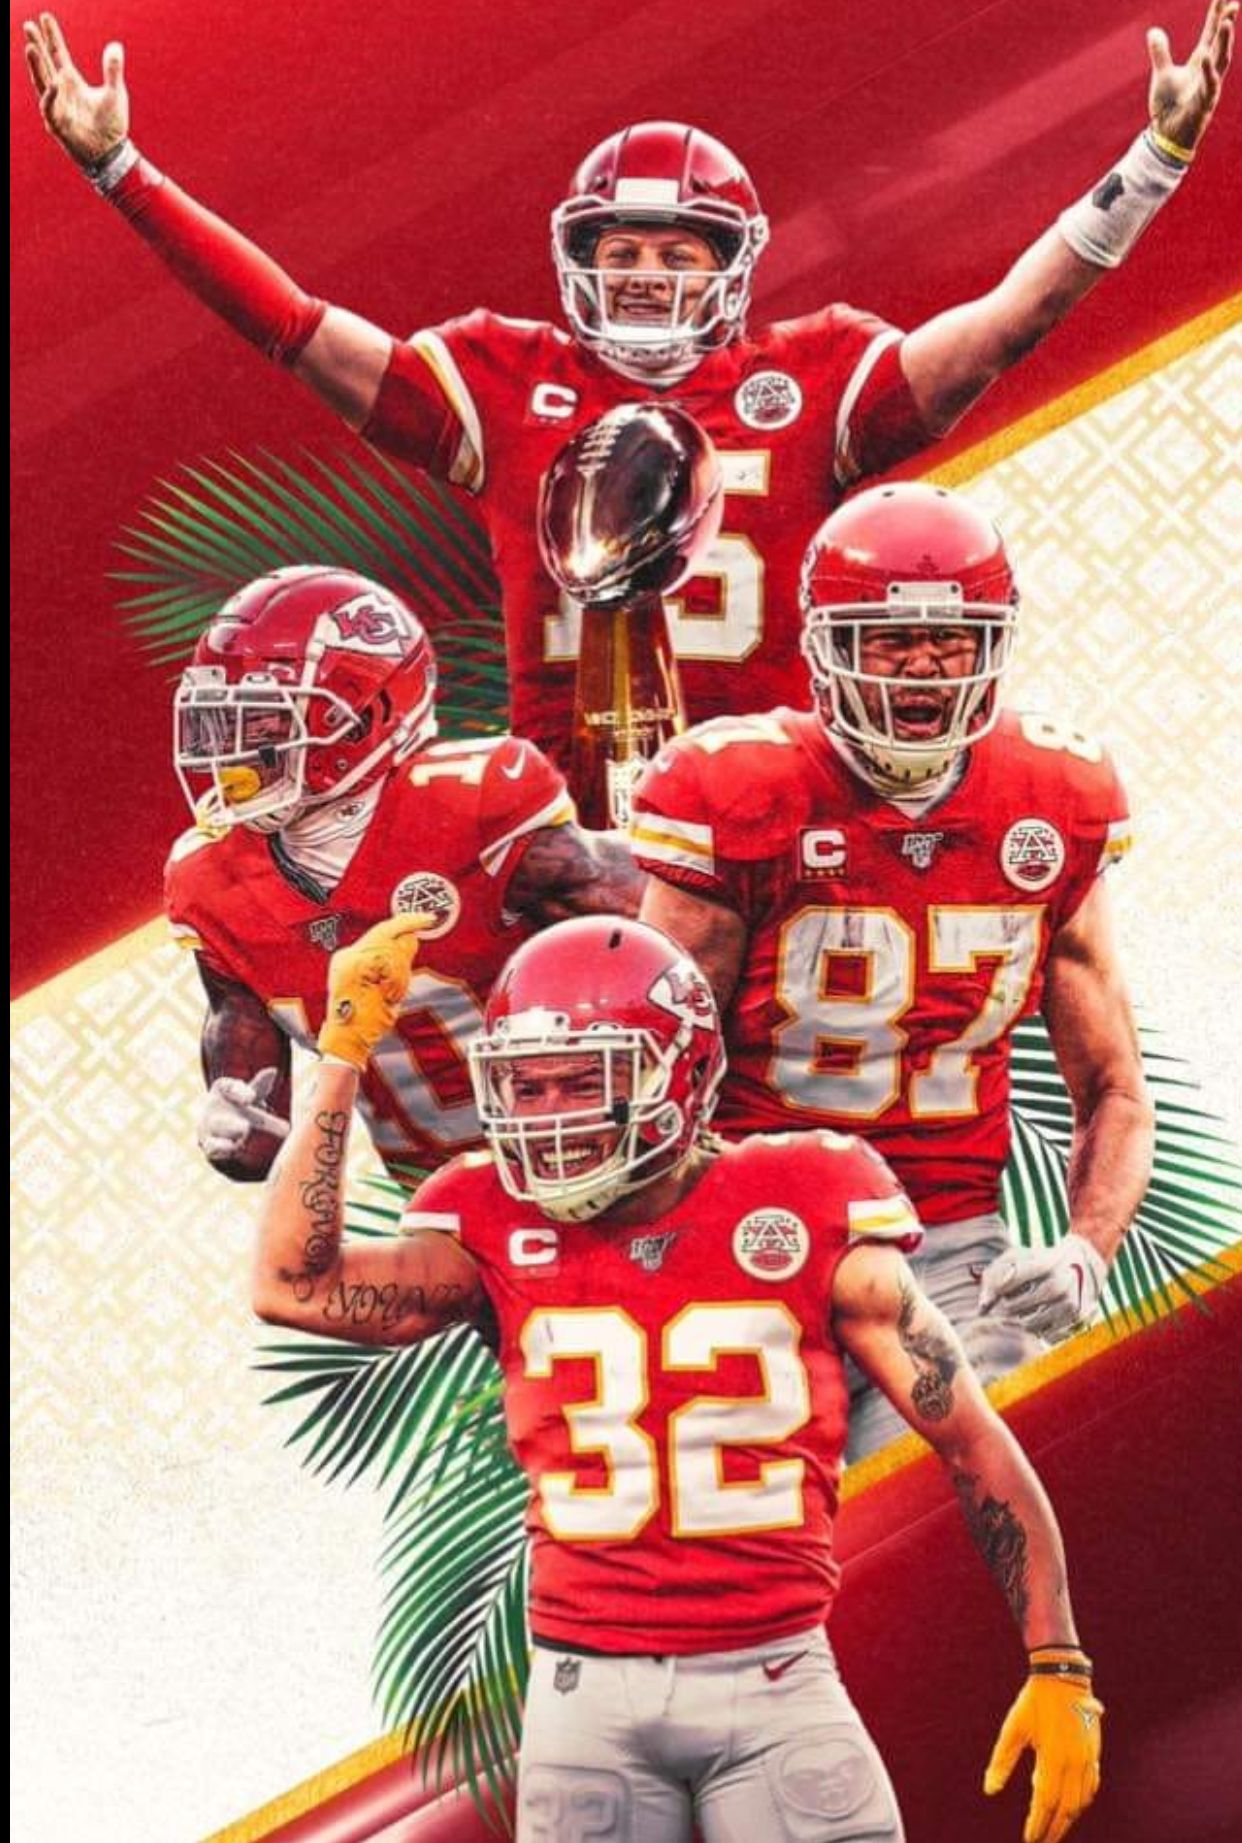 Pin By Tammy Heier On Kansas City Chiefs In 2020 With Images Kansas City Chiefs Football Kansas City Chiefs Logo Nfl Kansas City Chiefs